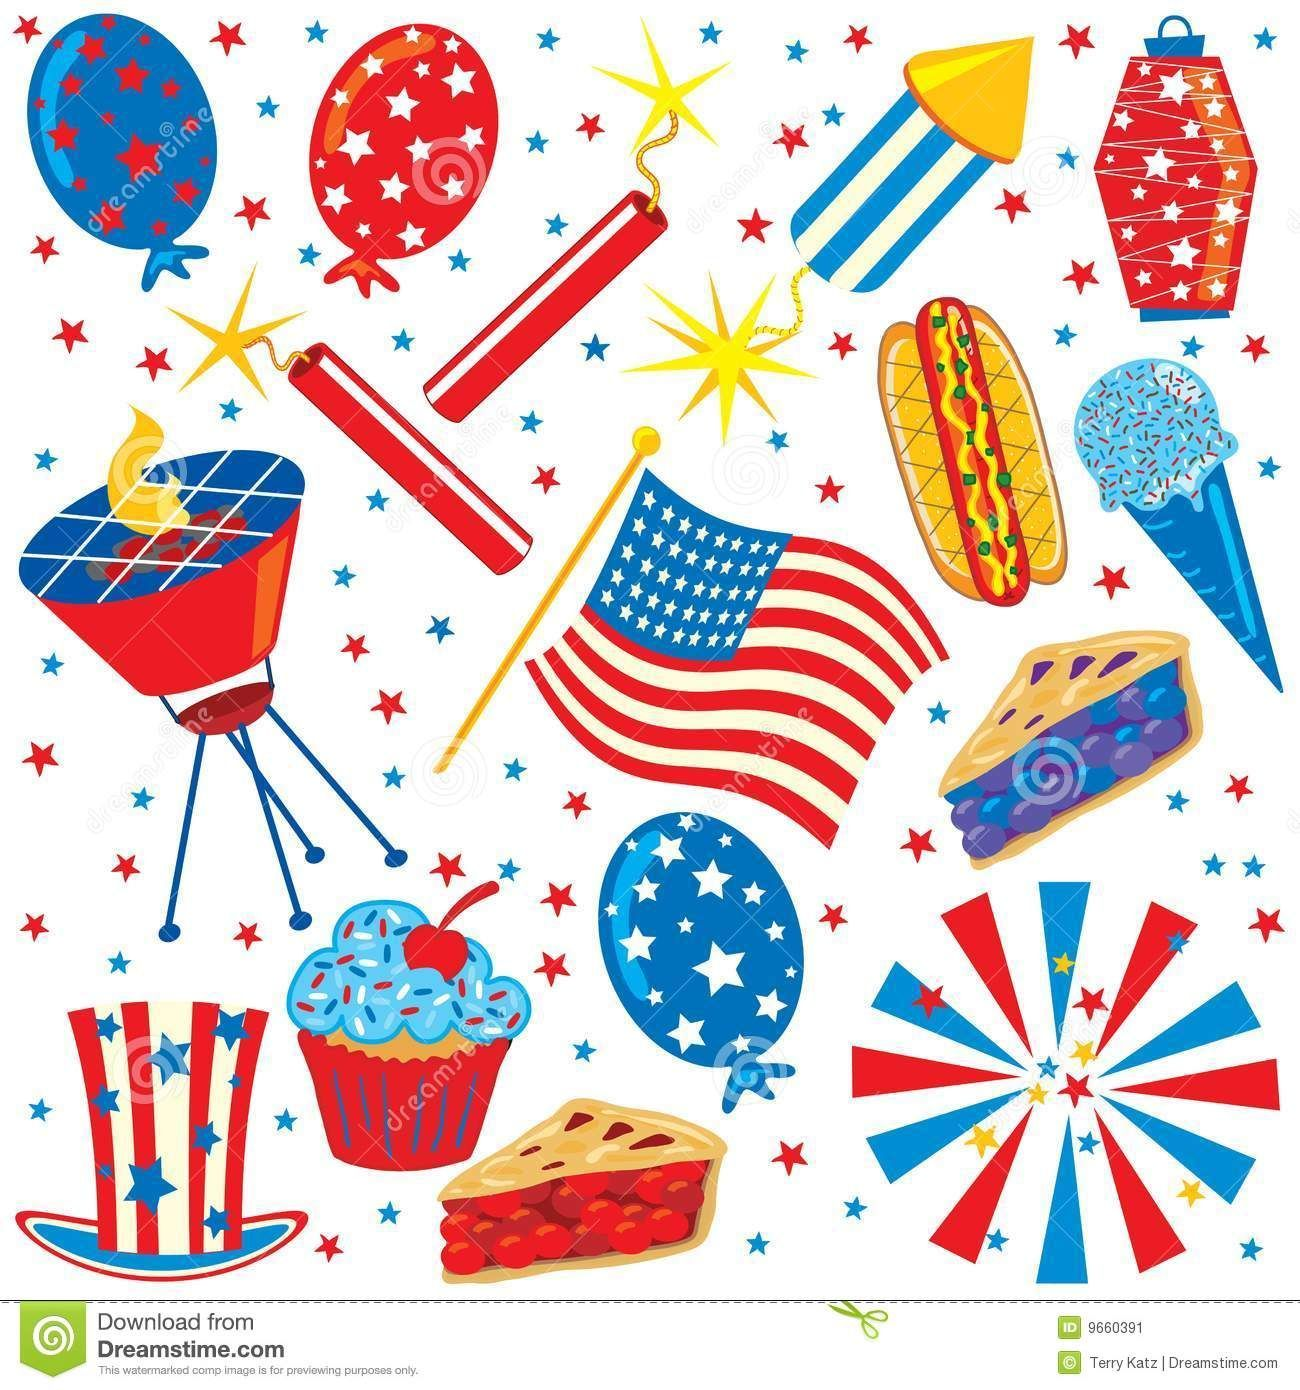 4th of july picnic clipart 6 » Clipart Portal.